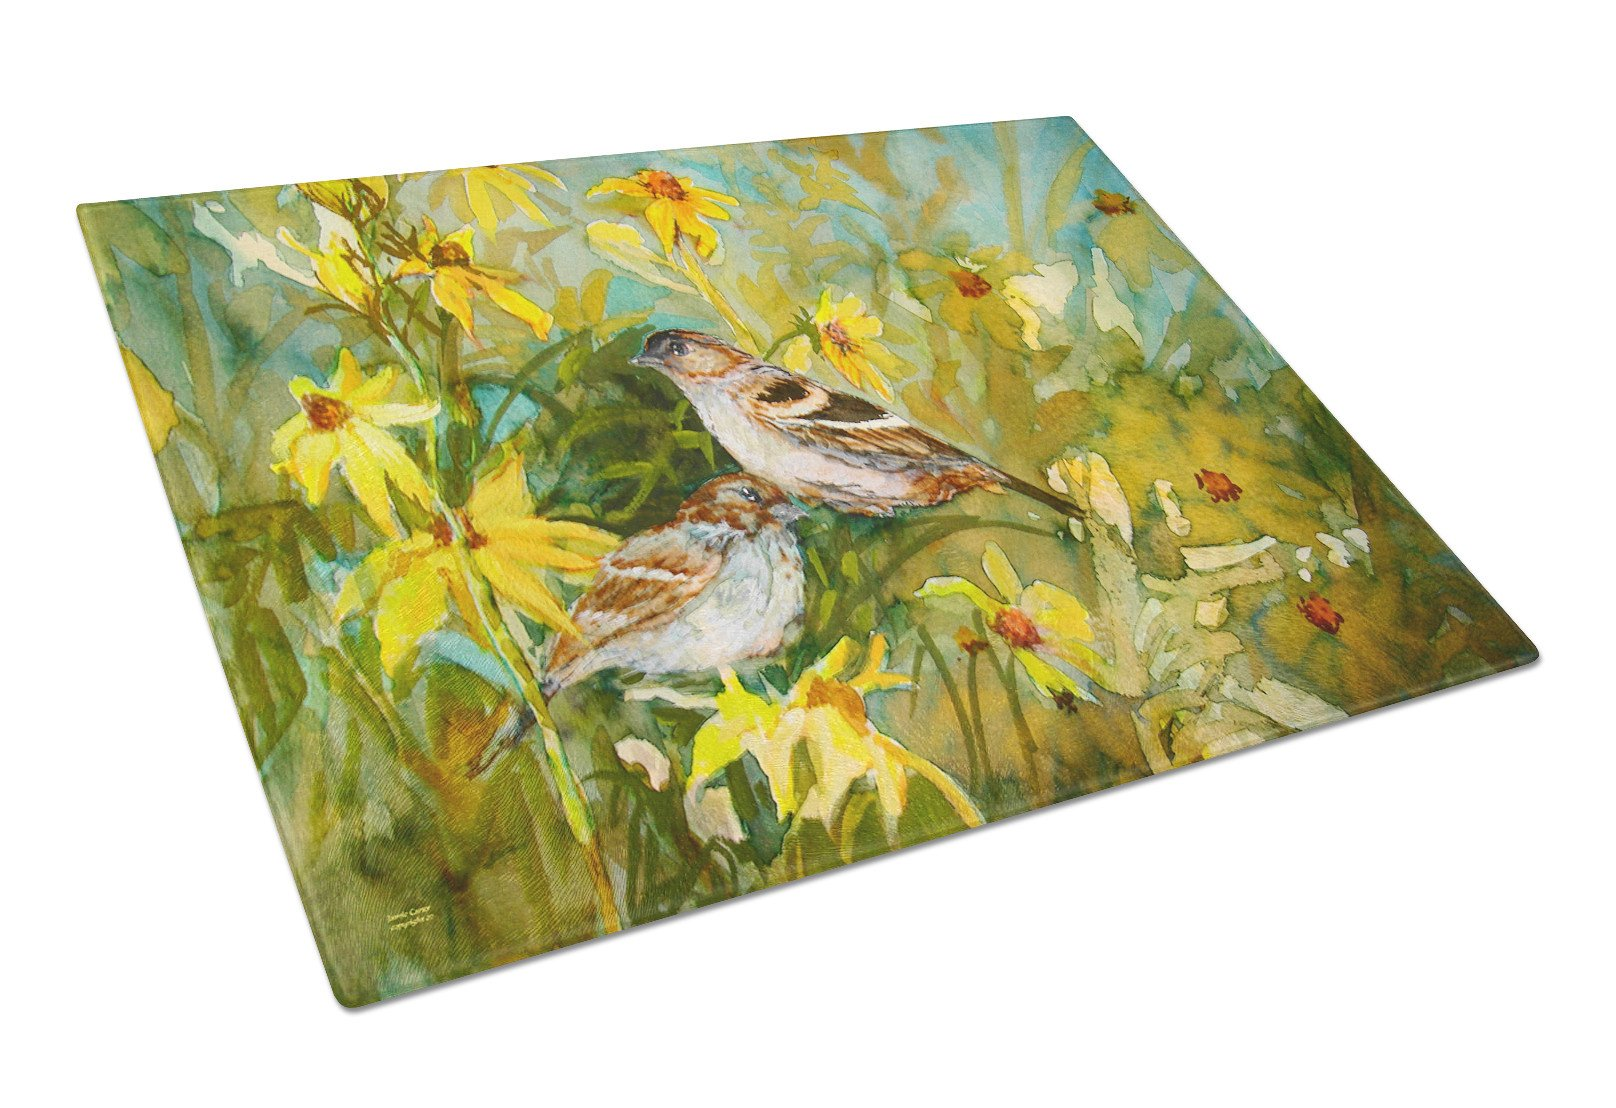 Sparrows in the Field Glass Cutting Board Large PJC1111LCB by Caroline's Treasures